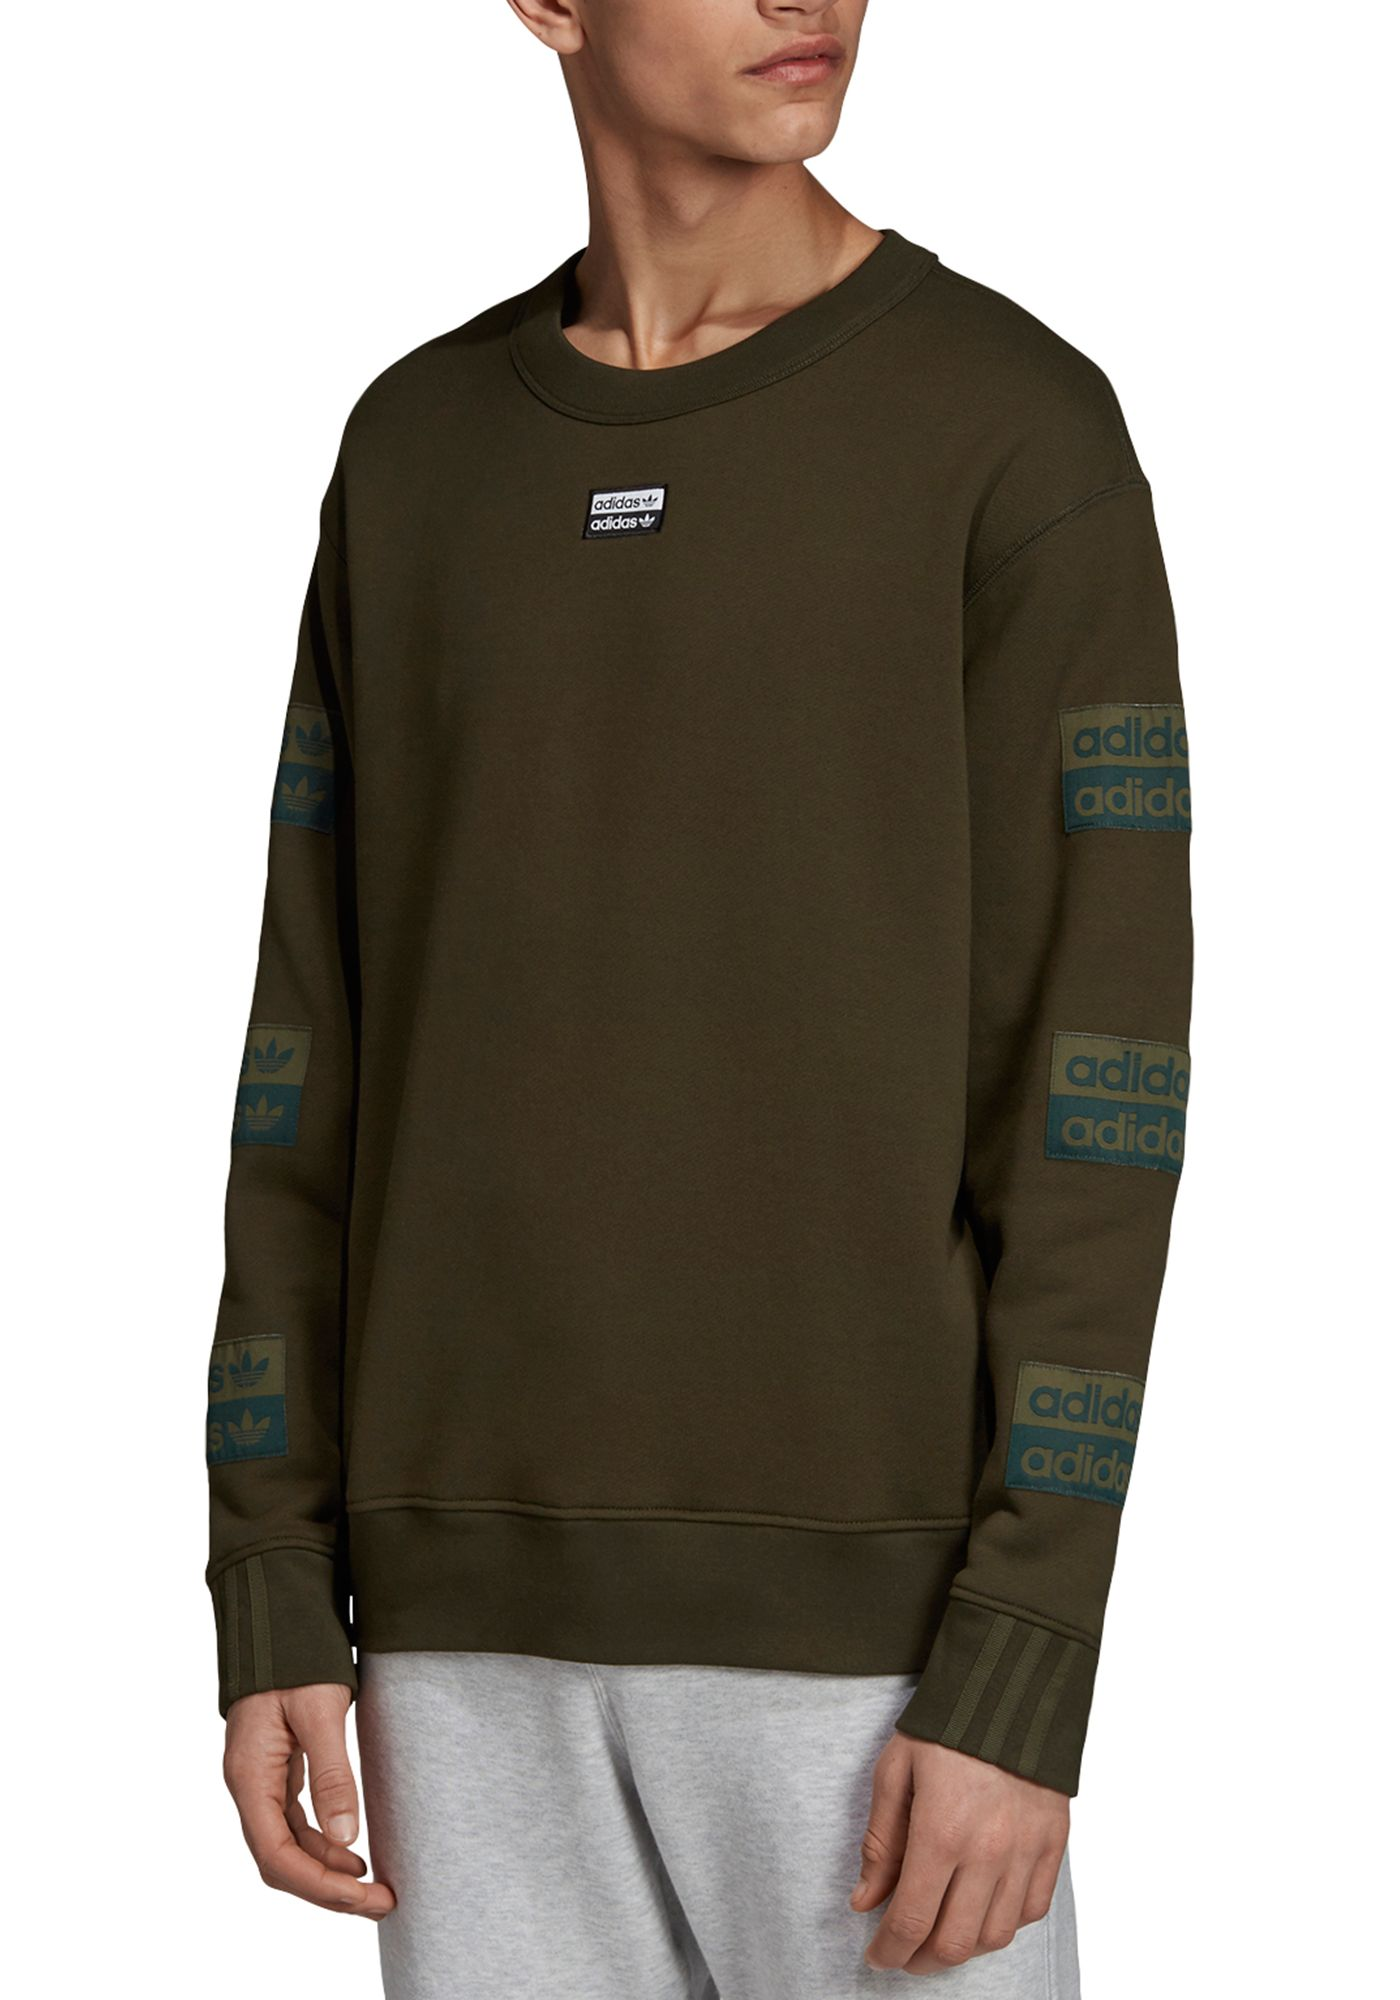 adidas Originals Men's RYV Crewneck Sweatshirt